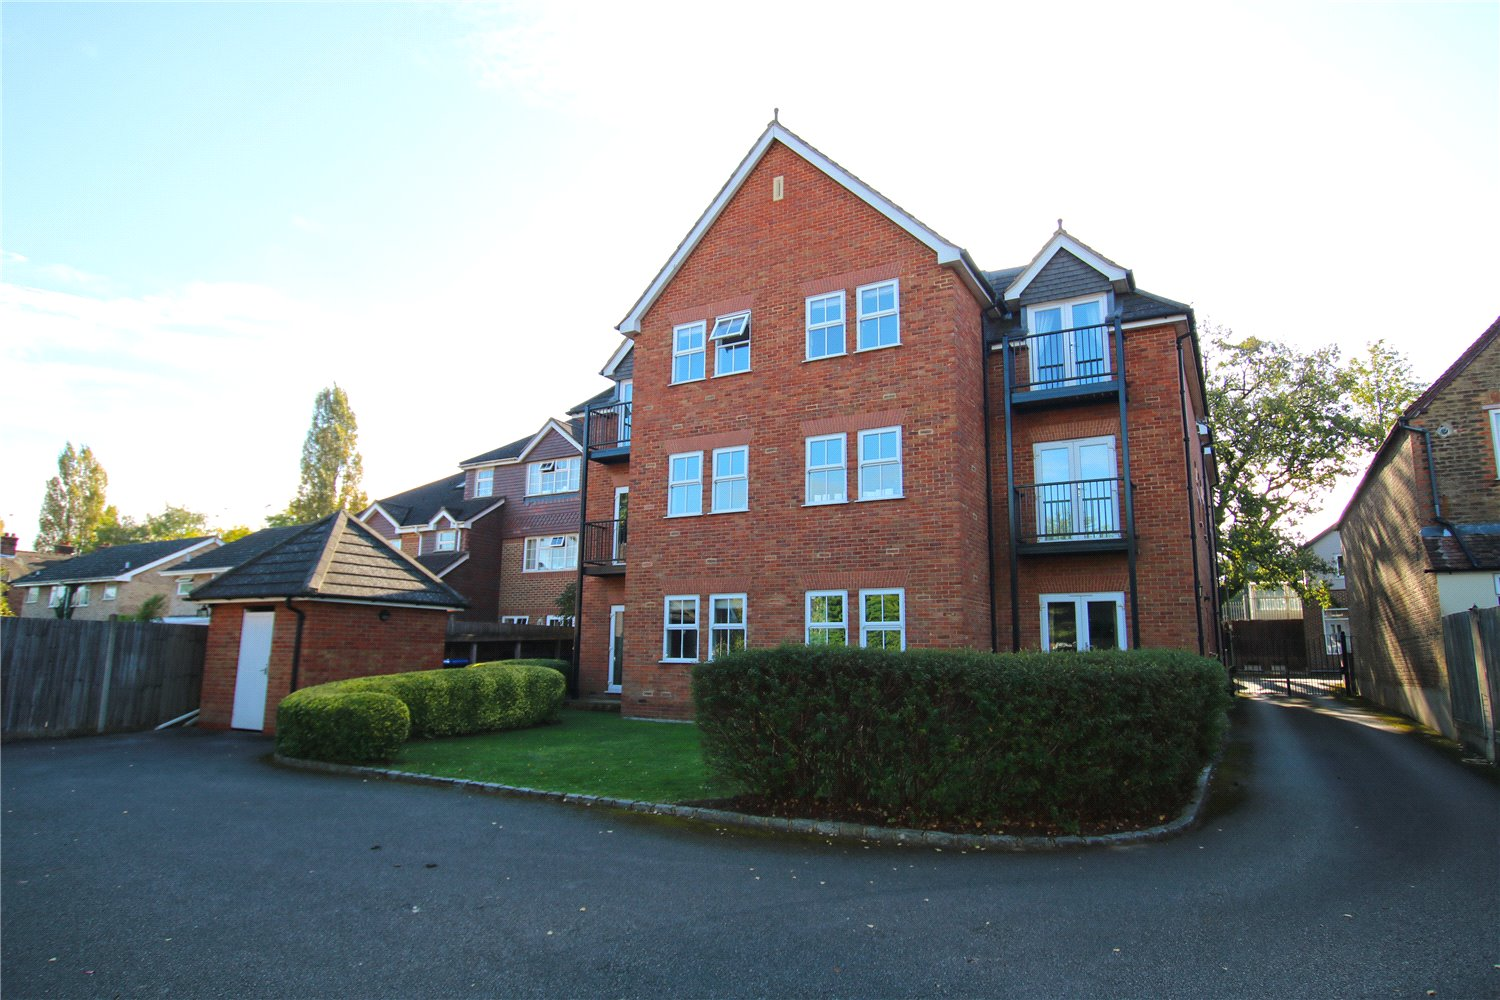 2 Bedrooms Apartment Flat for sale in Mill Cleave, 11 Claremont Road, West Byfleet, Surrey, KT14